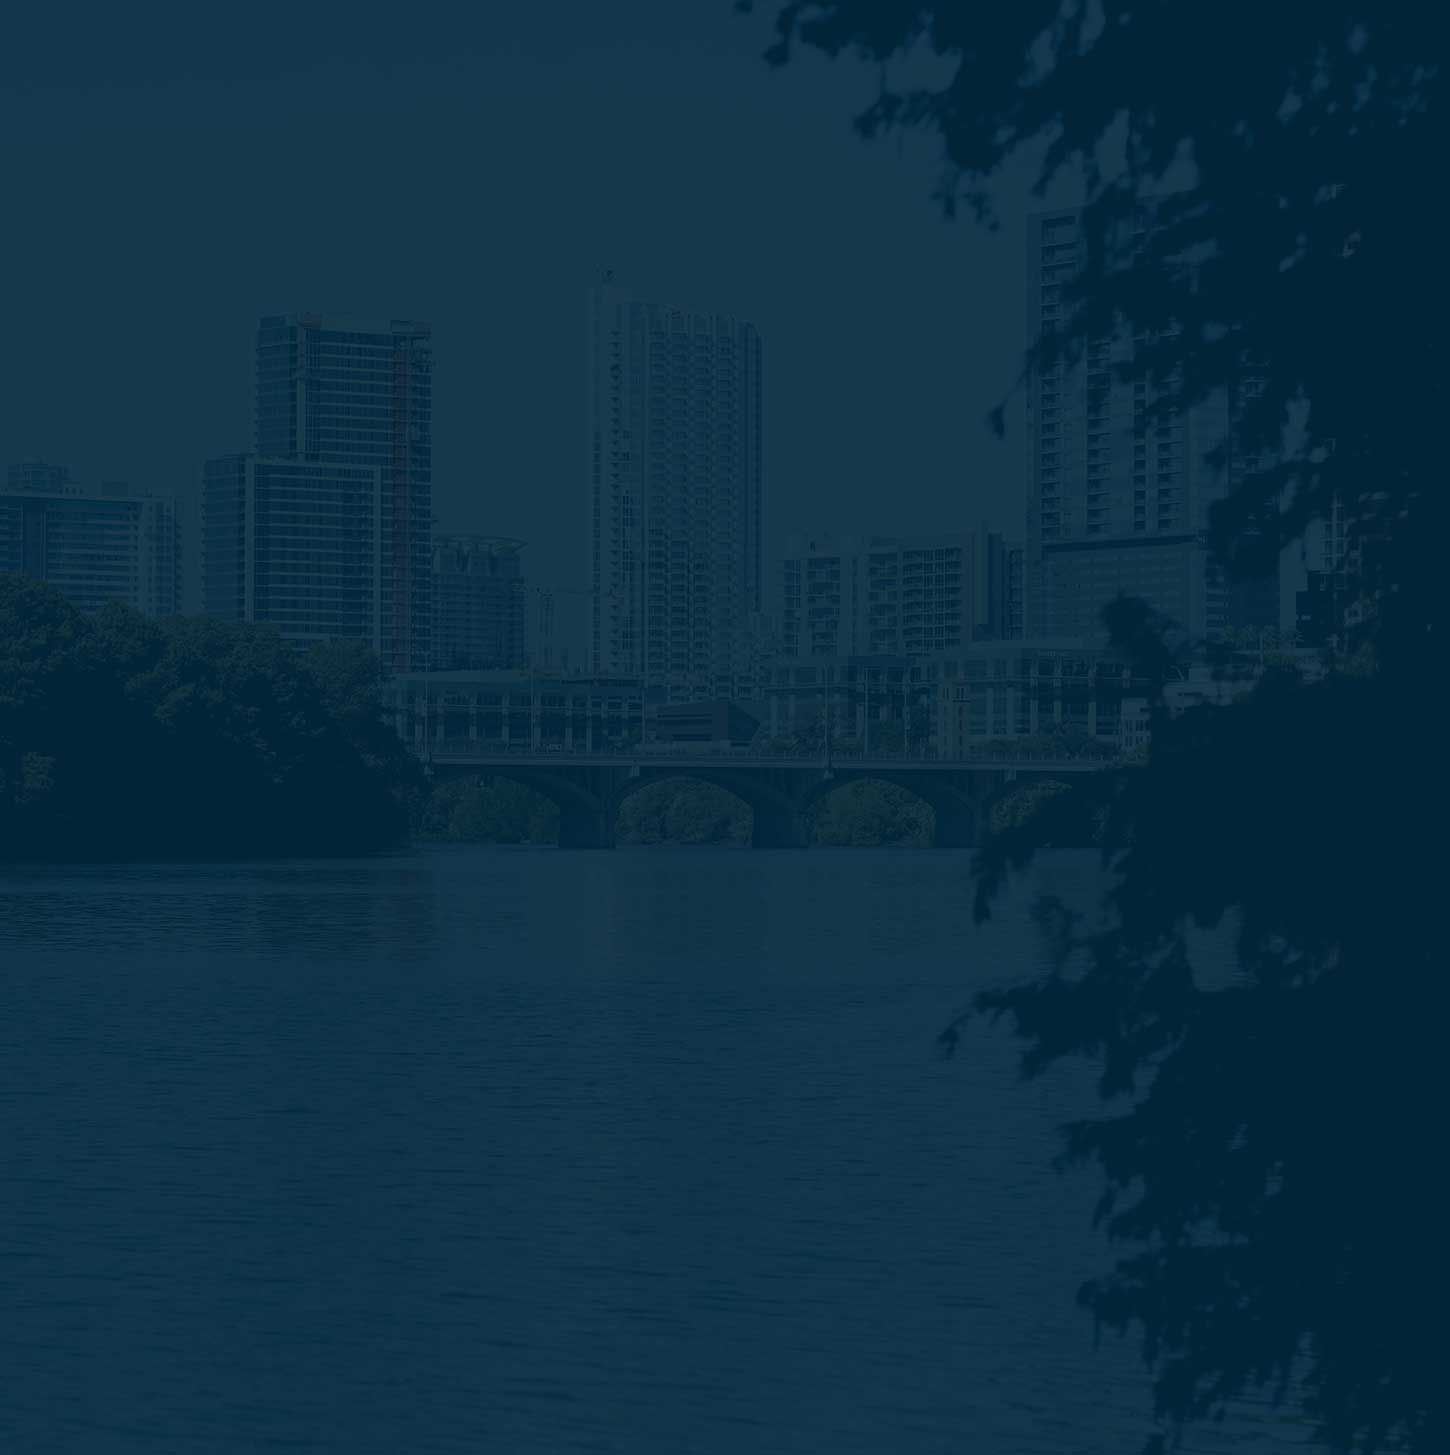 Image of downtown Austin from the perspective of Town Lake with dark blue tinted overlay